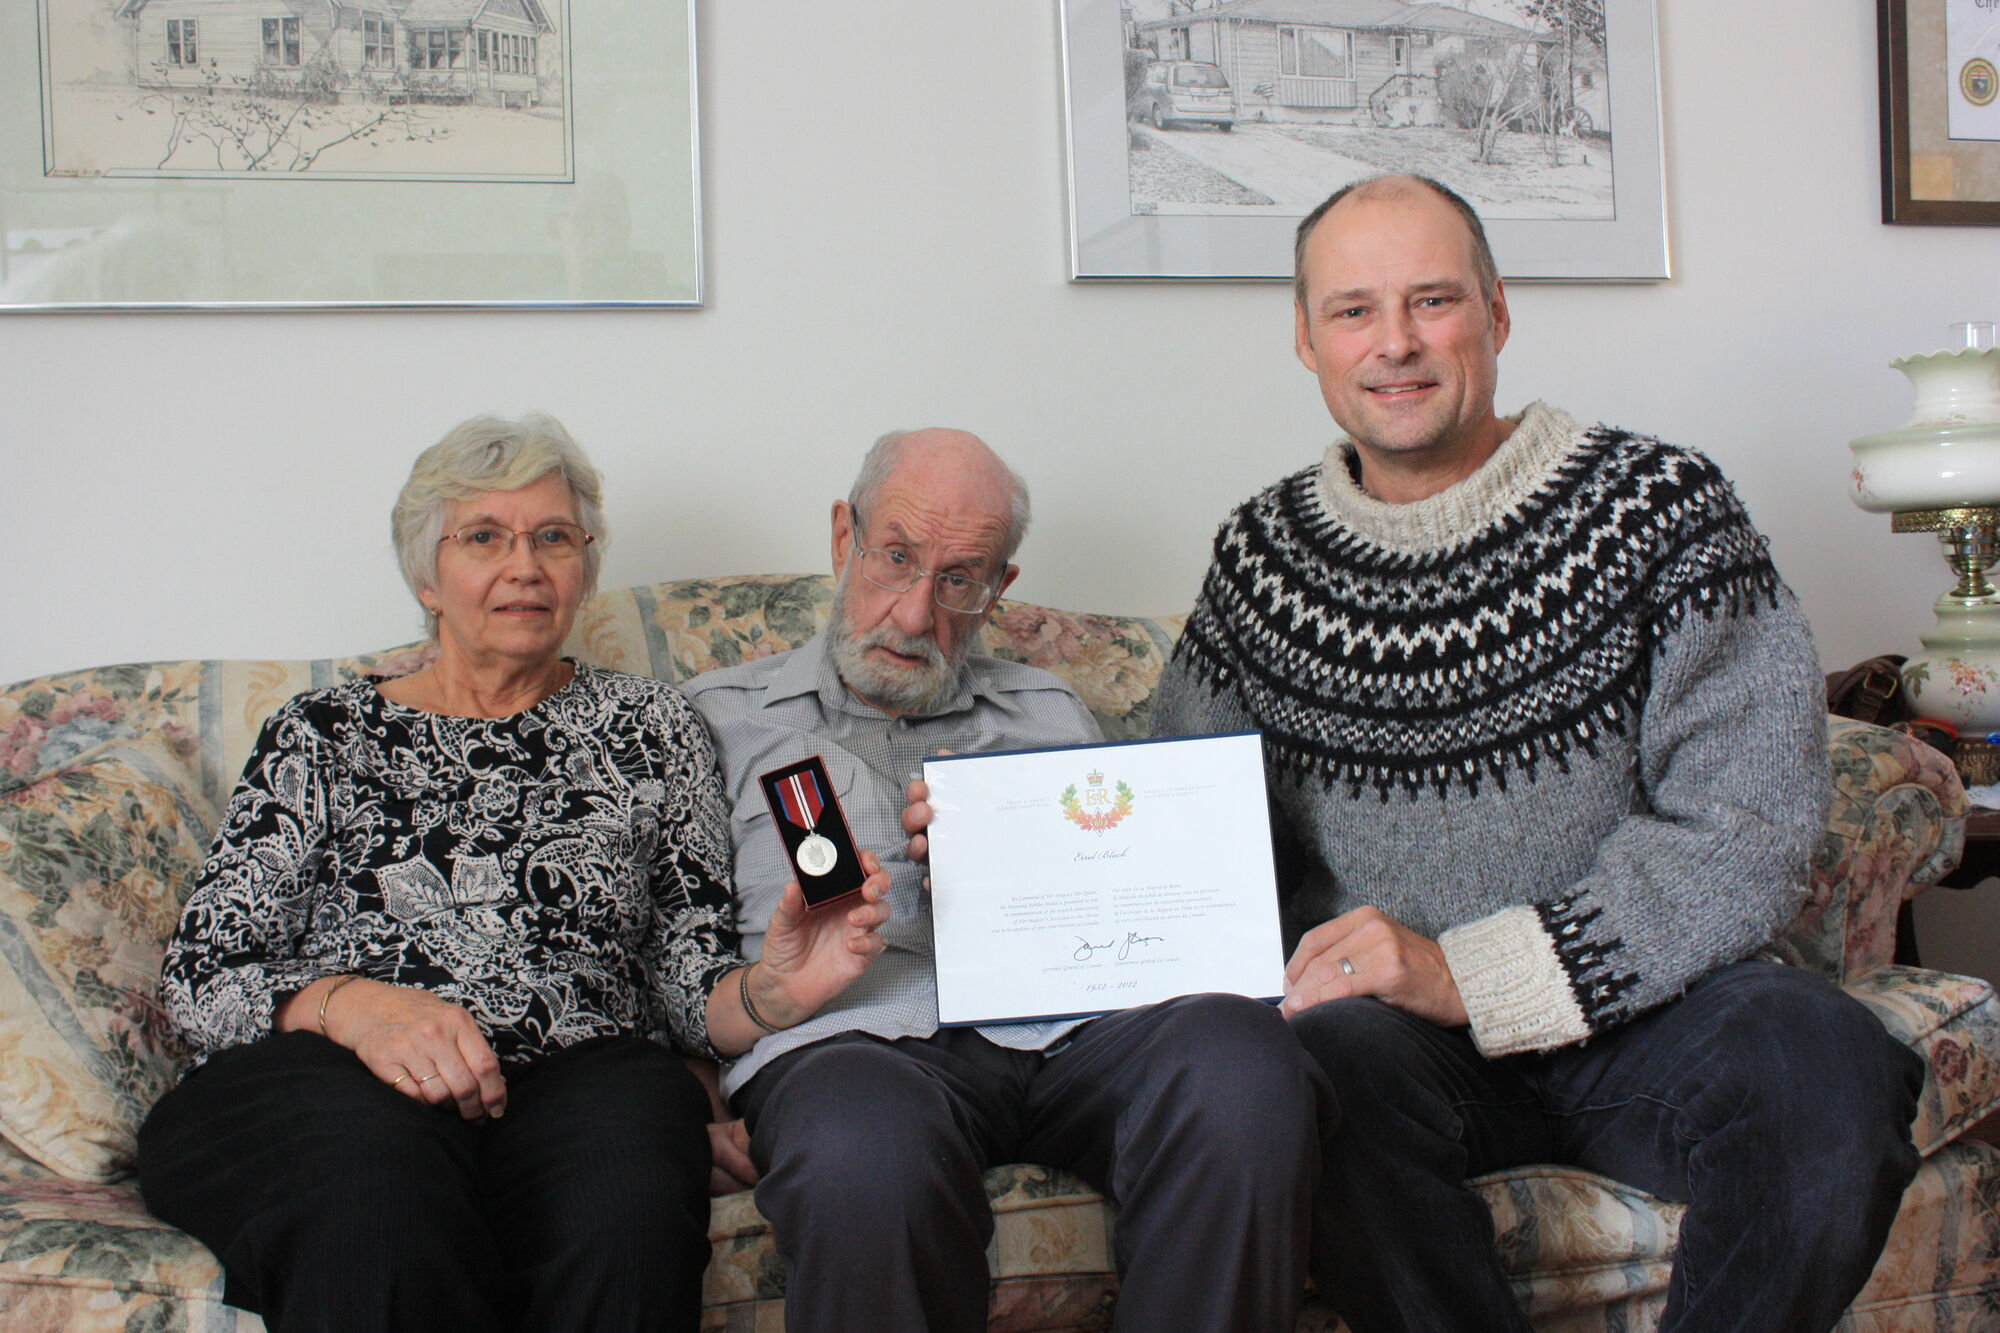 Errol Black (middle) and his wife Margaret Black accept the Queen Elizabeth Diamond Jubilee Medal and certificate from Brandon East MLA Drew Caldwell.